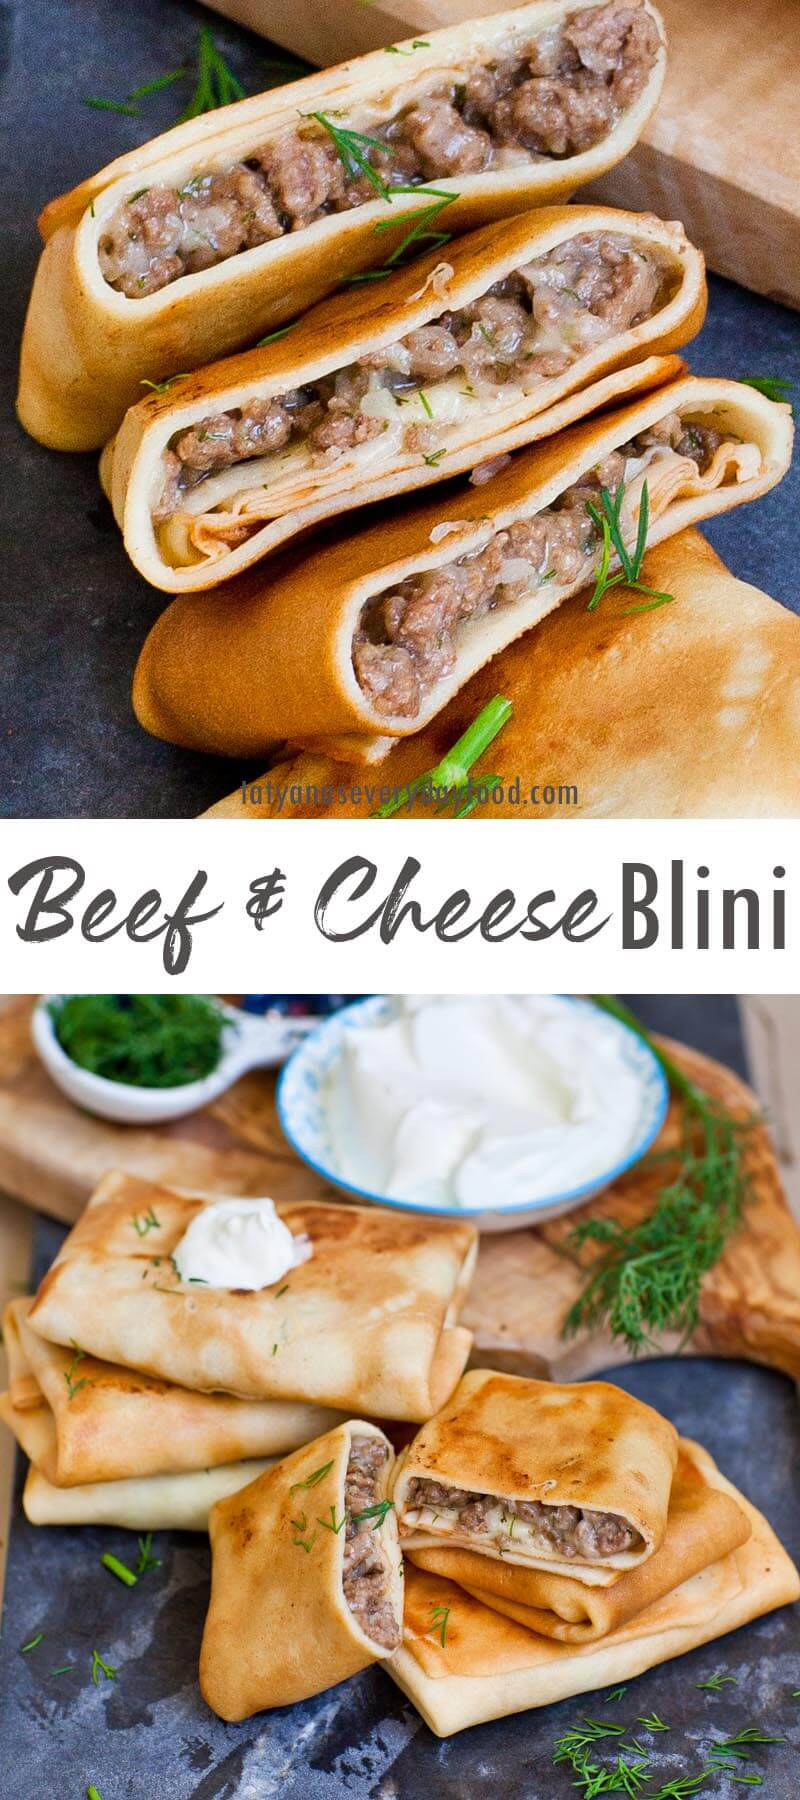 Meat & Cheese Blini video recipe